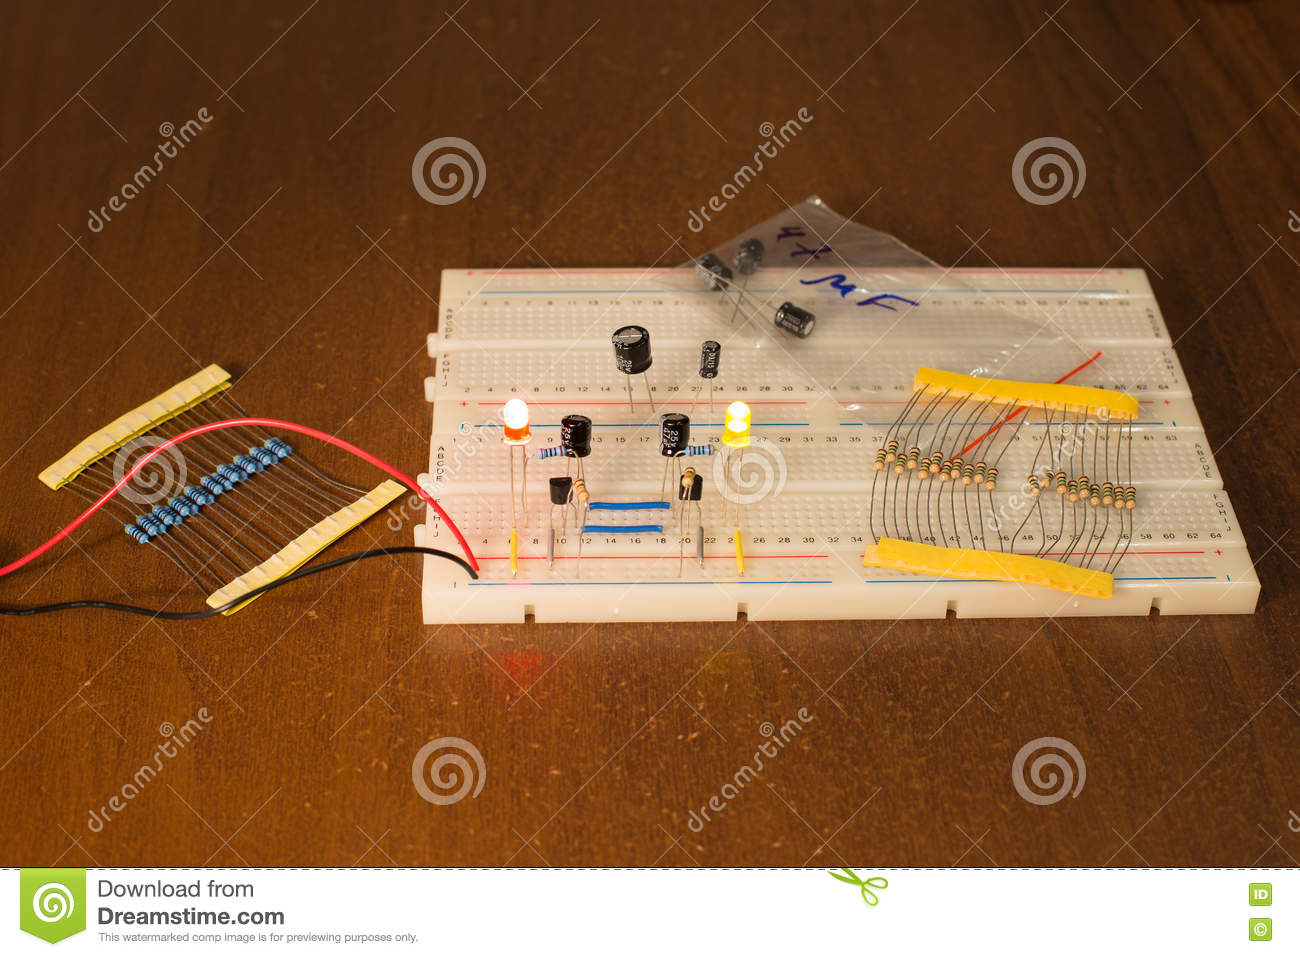 Oscillator Circuit On Prototyping Board Breadboard Stock Image Oscillating Led And Control